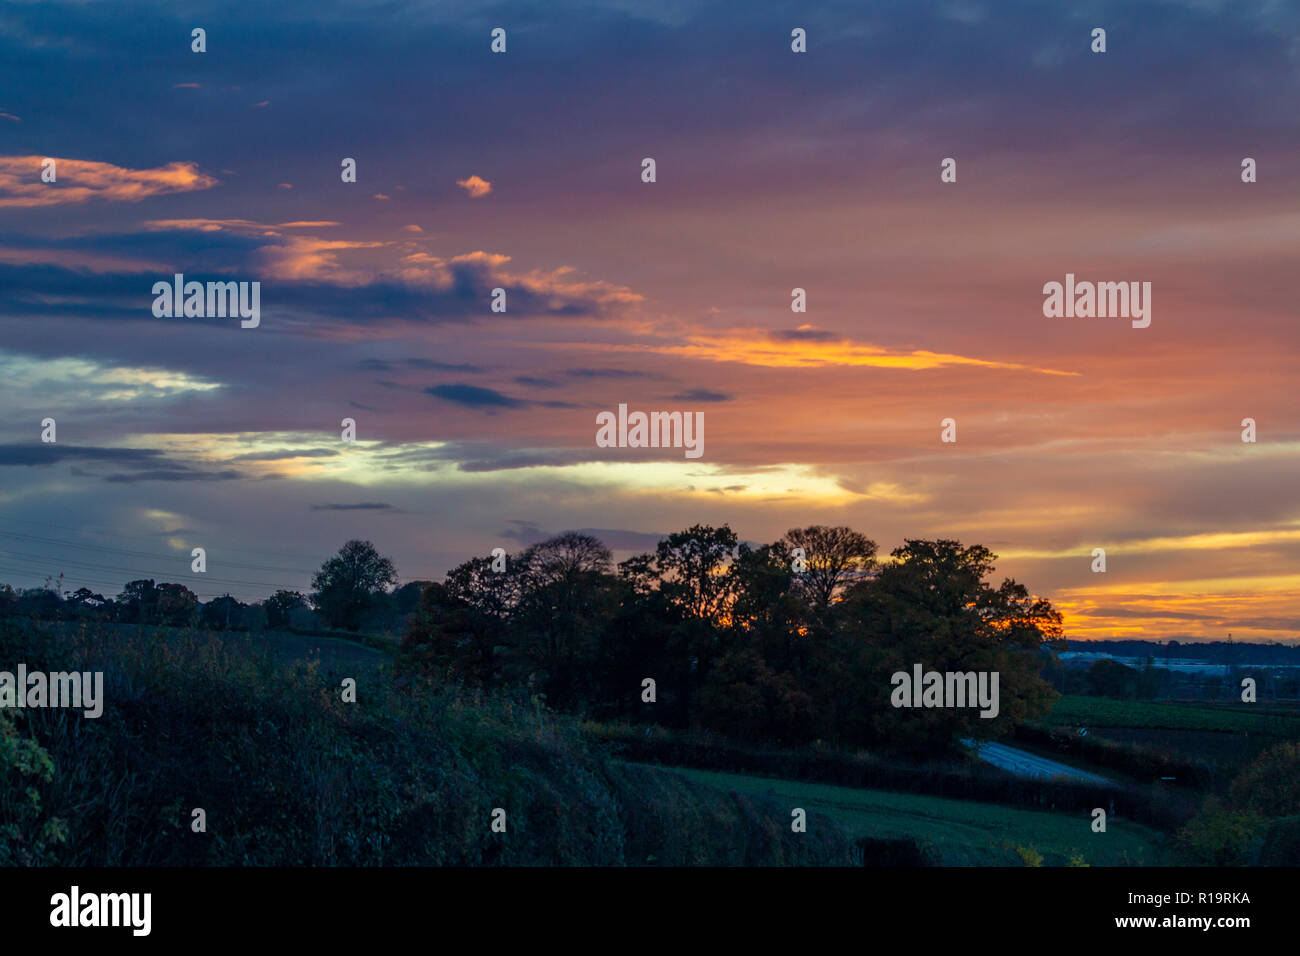 Northampton, UK. Weather10th November 2018. Stormy and colourful skies over Northamptonshire late afternoon, Credit: Keith J Smith./Alamy Live News - Stock Image